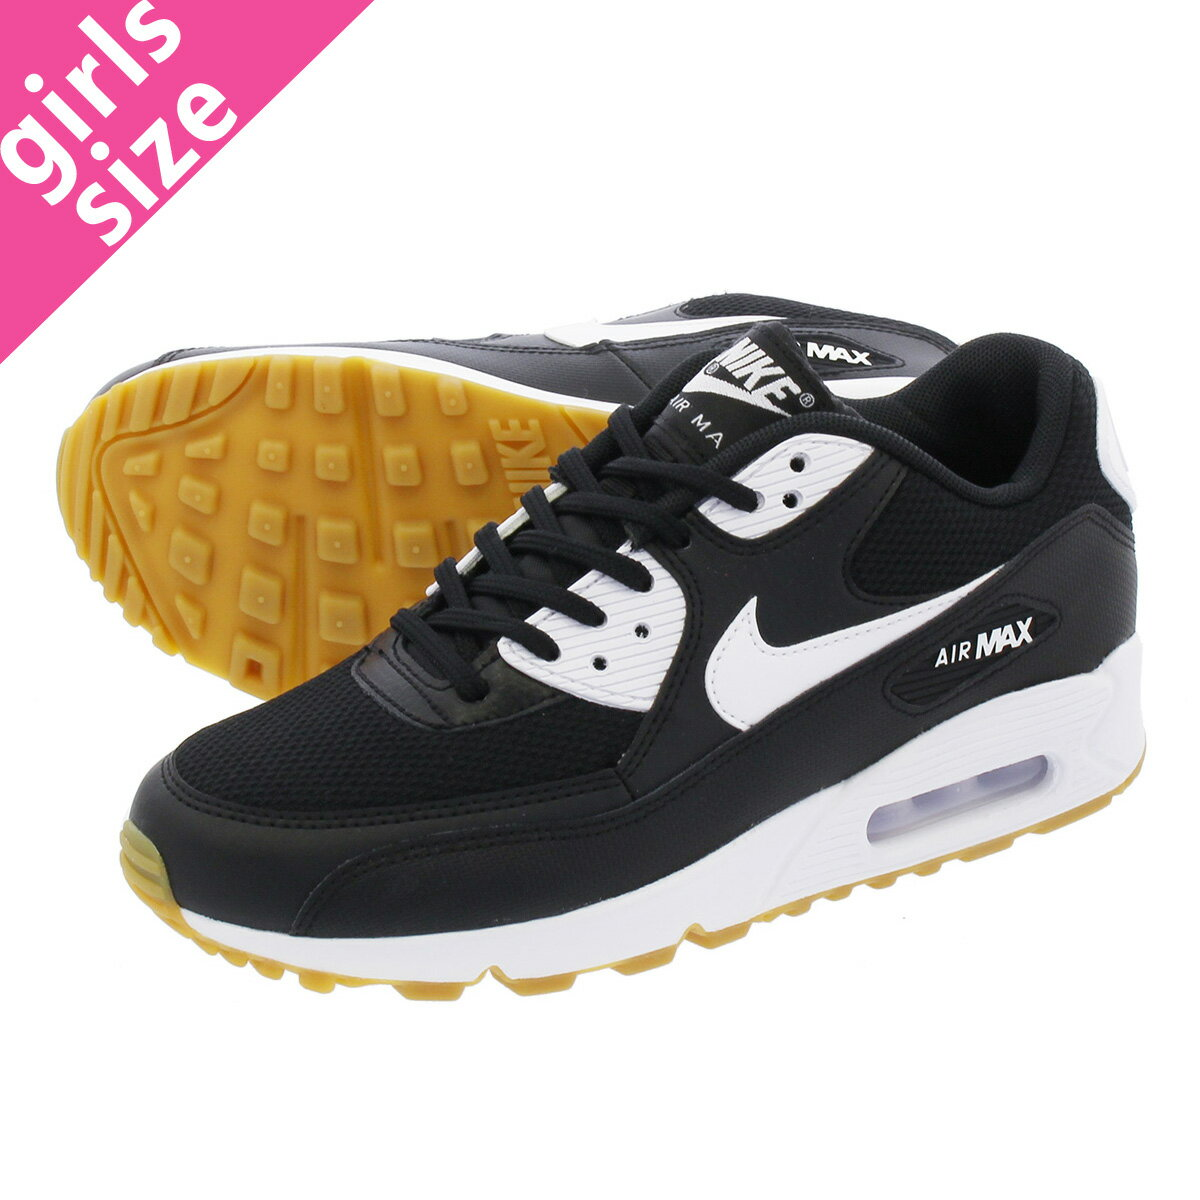 OUTLET NIKE WMNS AIR MAX 90 ESSENTIAL whtblk w.gry 616,730 111